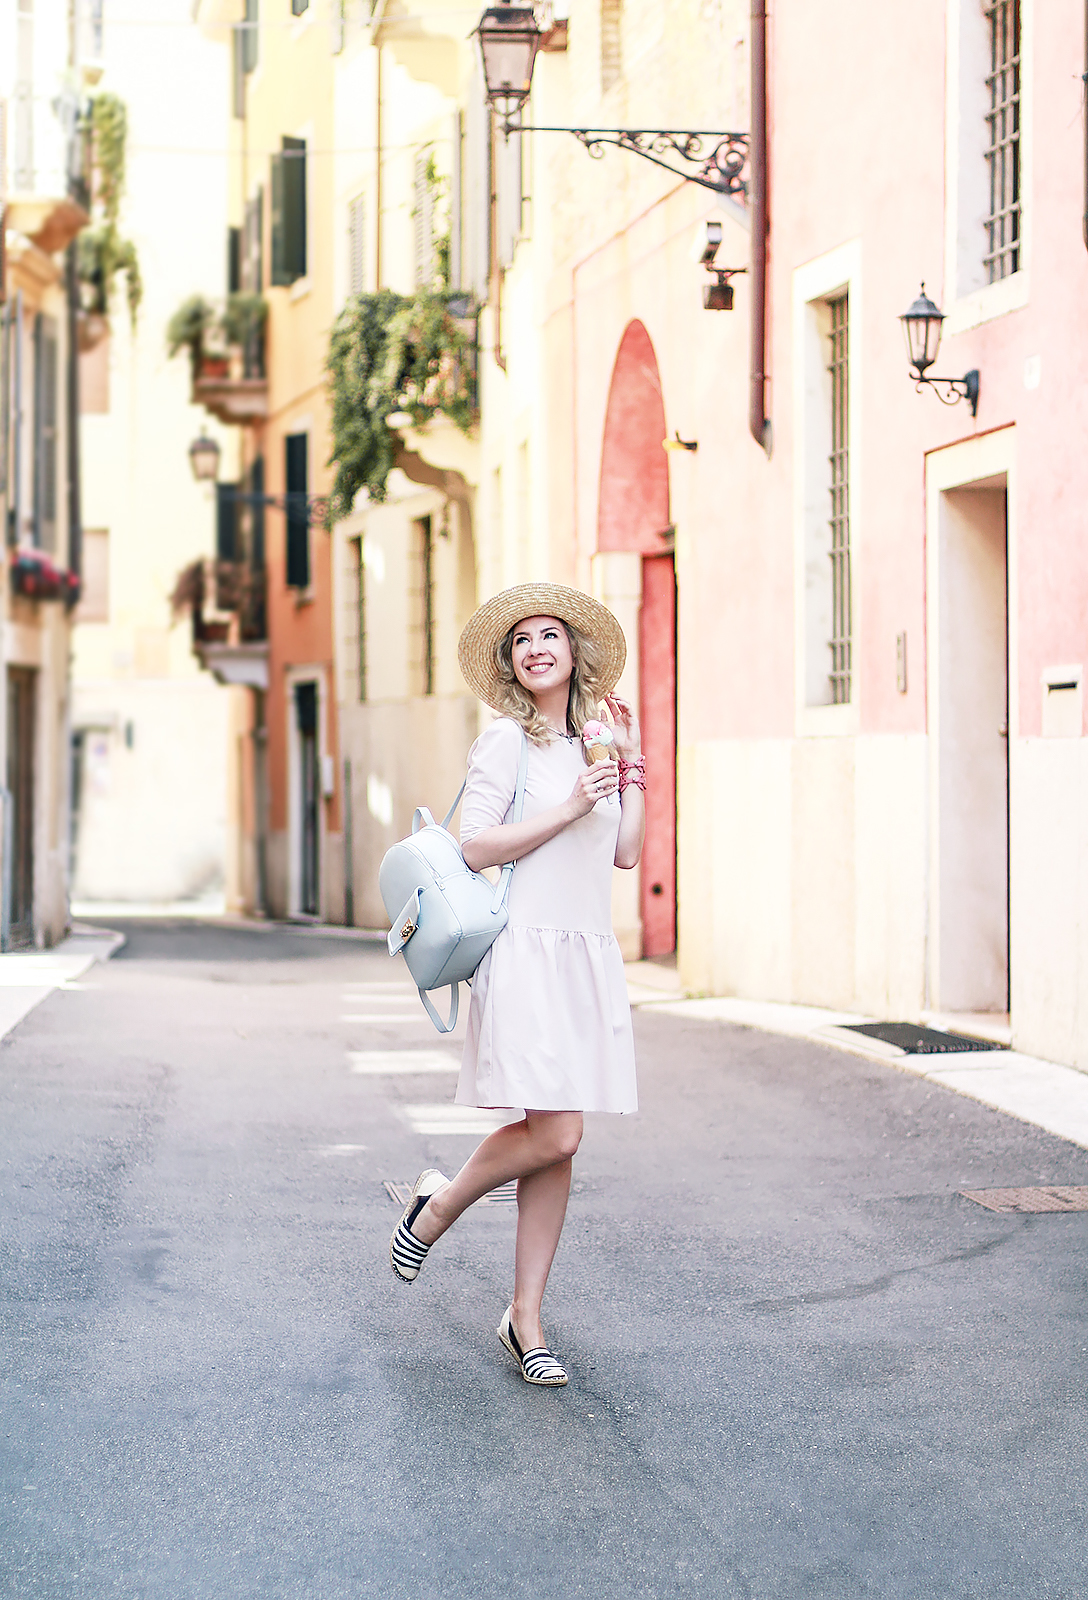 rita_maslova_ritalifestyle_travel_fashion_lifestyle_blog_russian_blogger_verona_italy